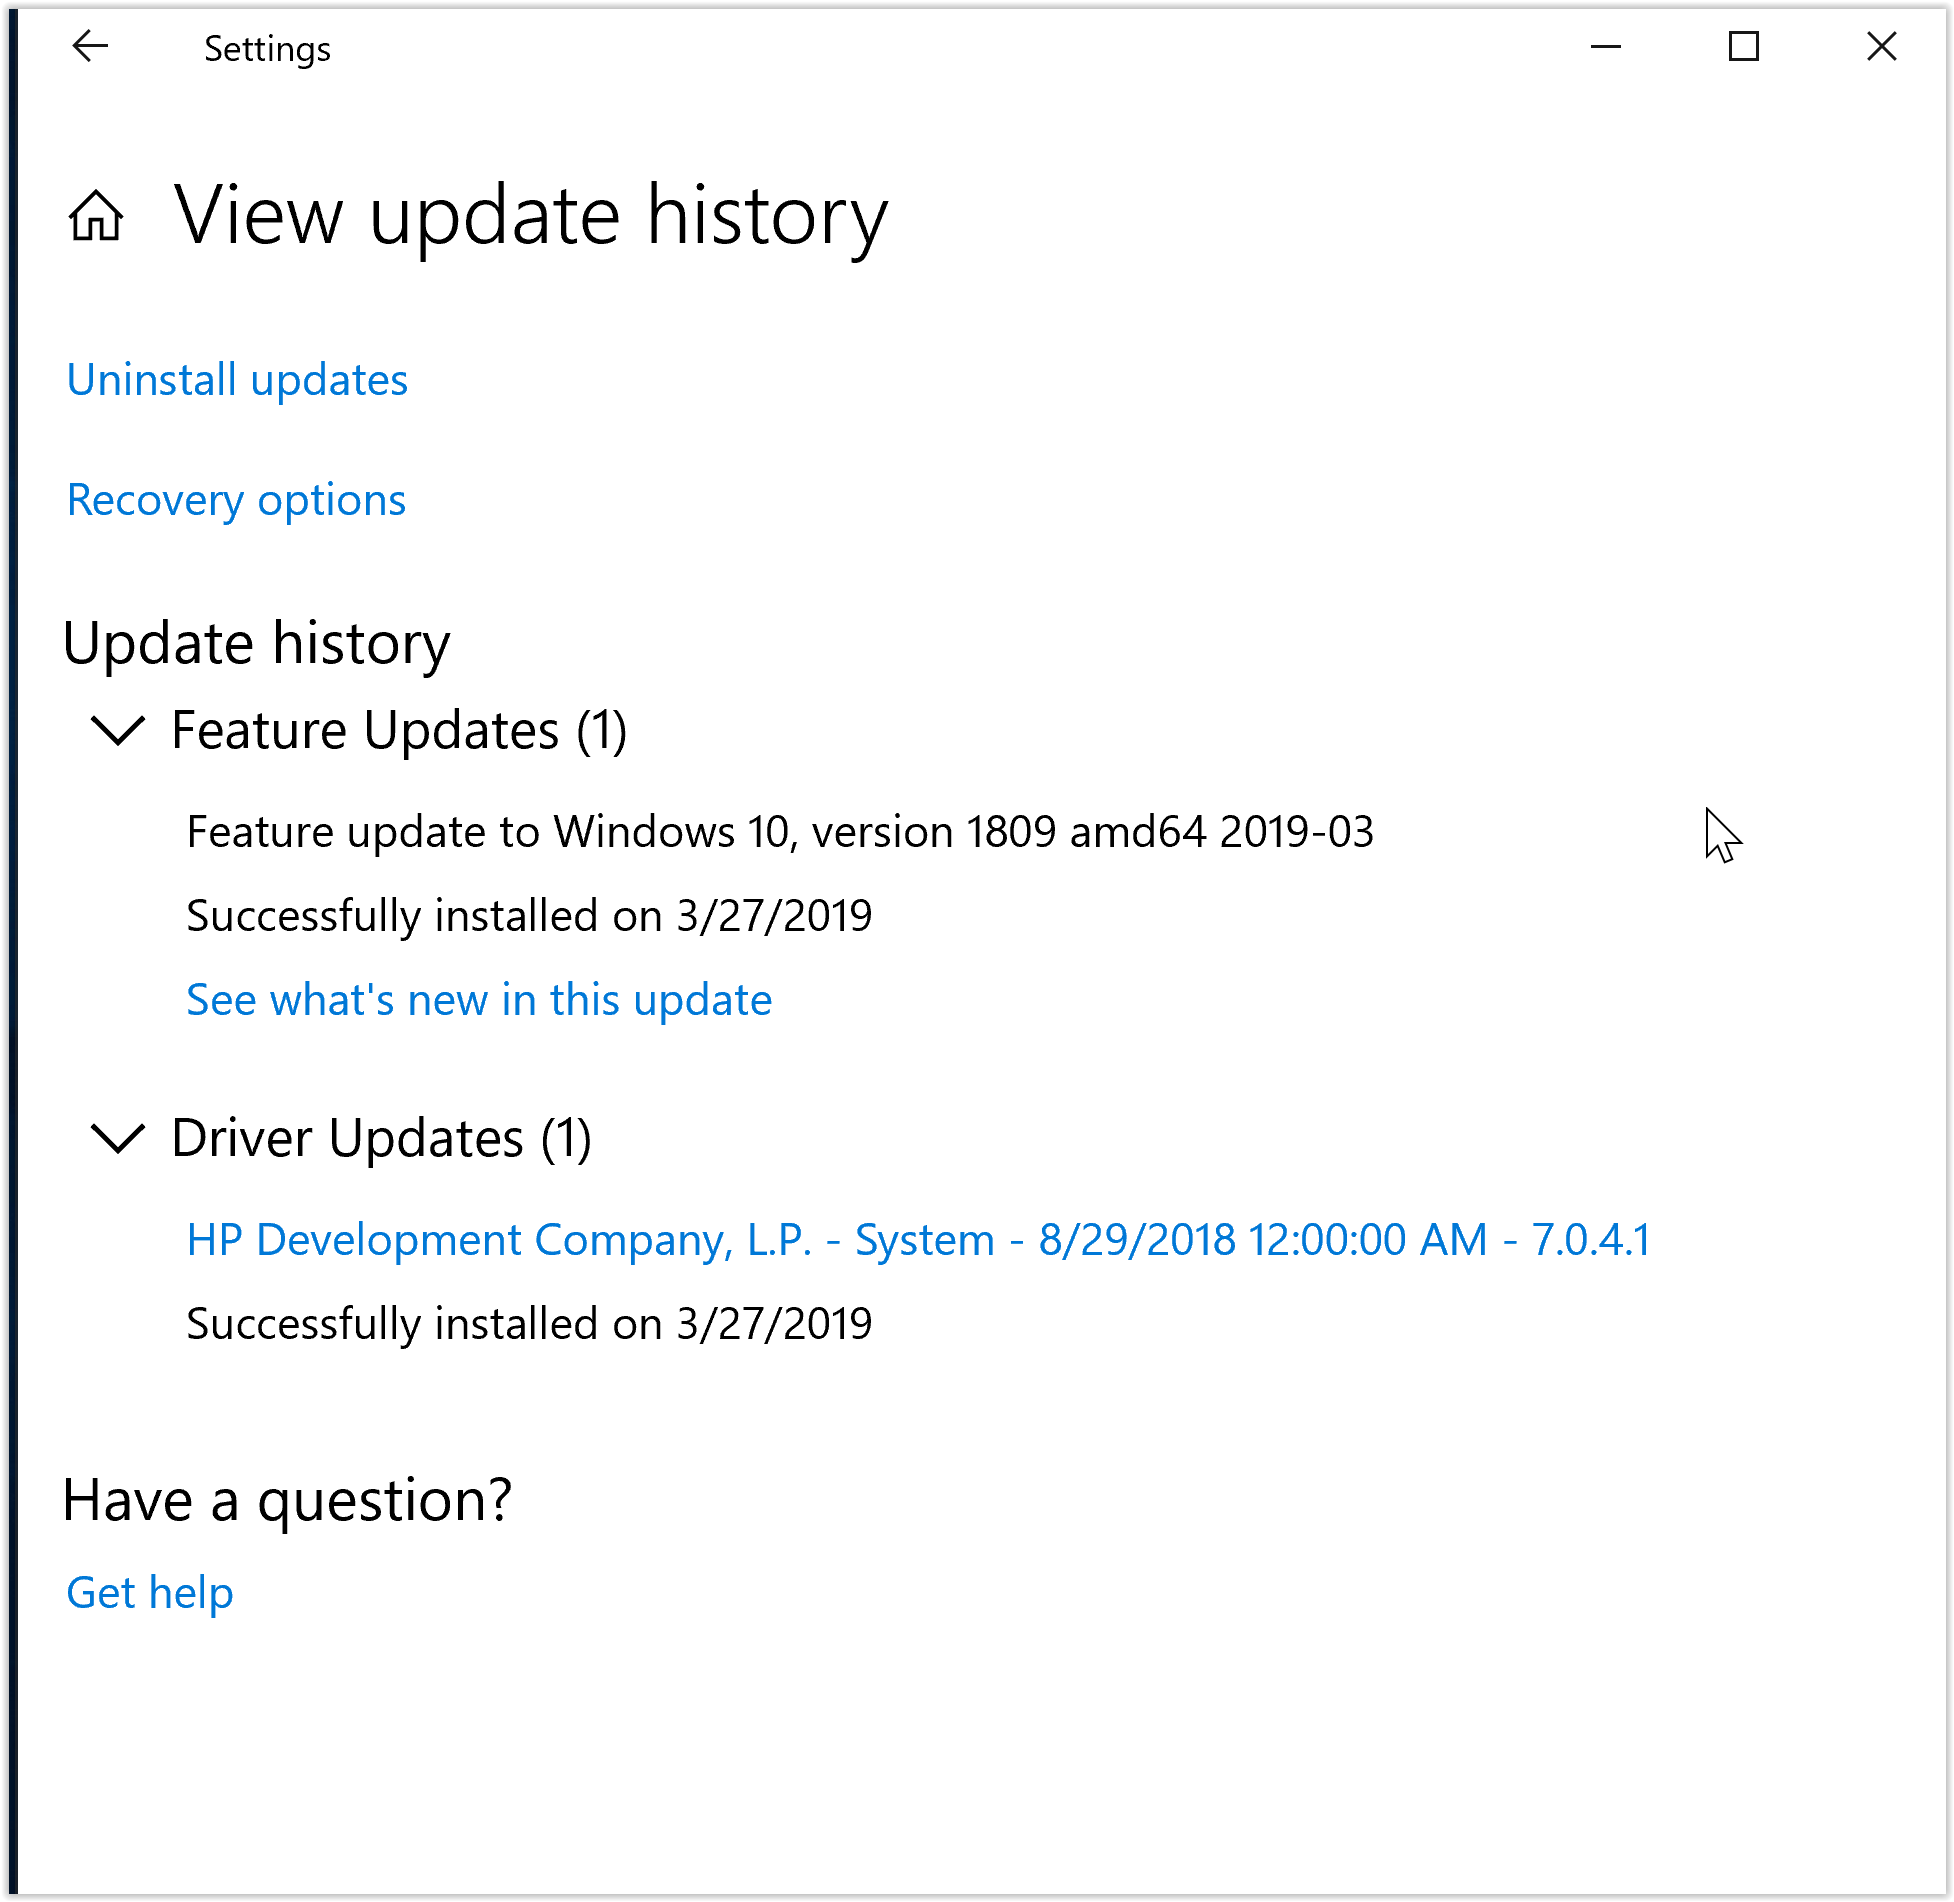 Feature update to Windows 10, version 1809 amd64 2019 03 - Microsoft